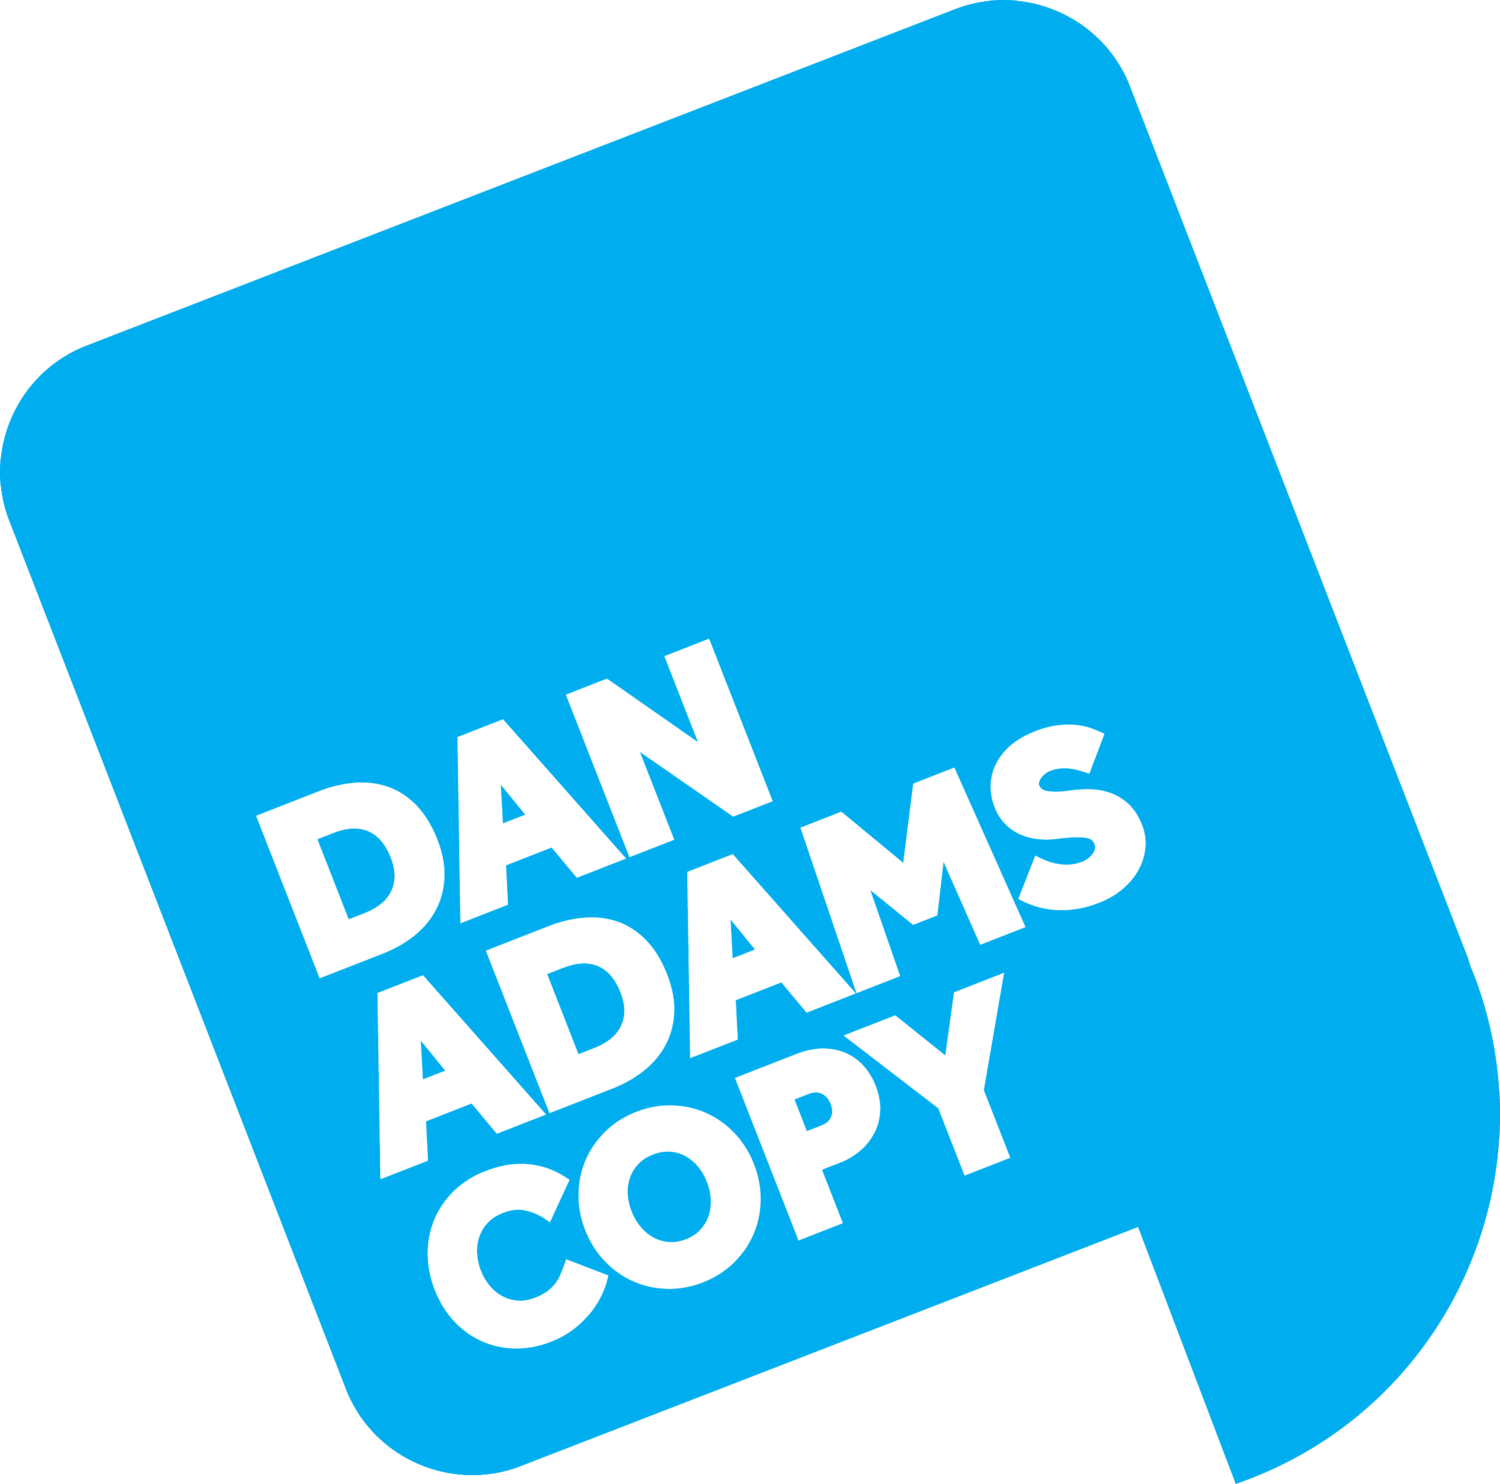 Dan Adams Copy